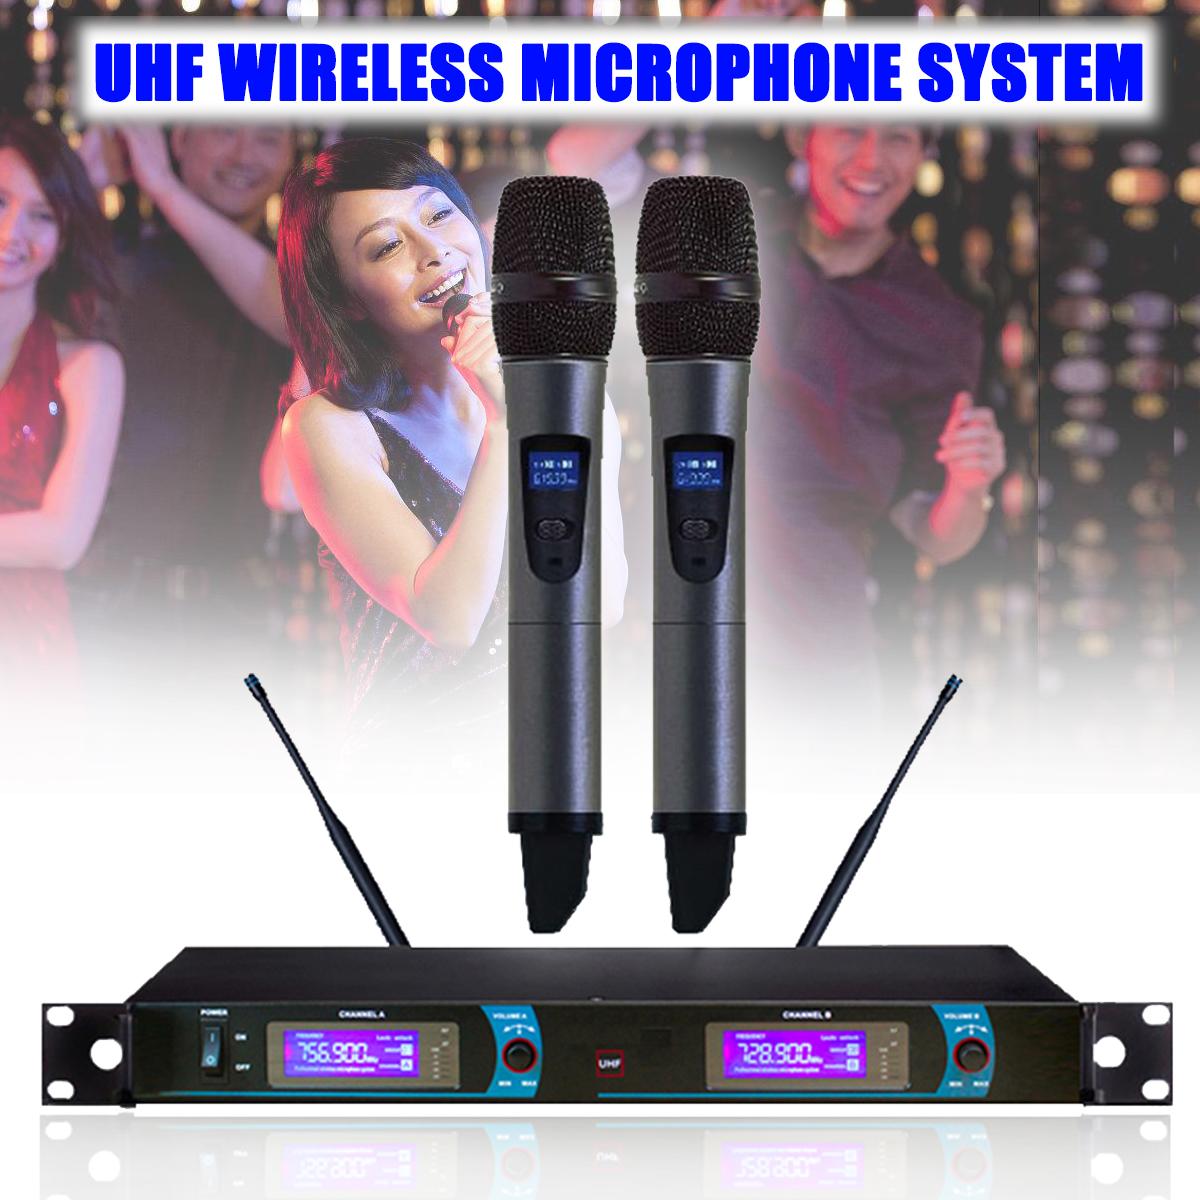 LCD Display UHF Wireless Dual Studio Microphone Mic System Home KTV Karaoke DJ Wireless Microphone Profesional for Computer